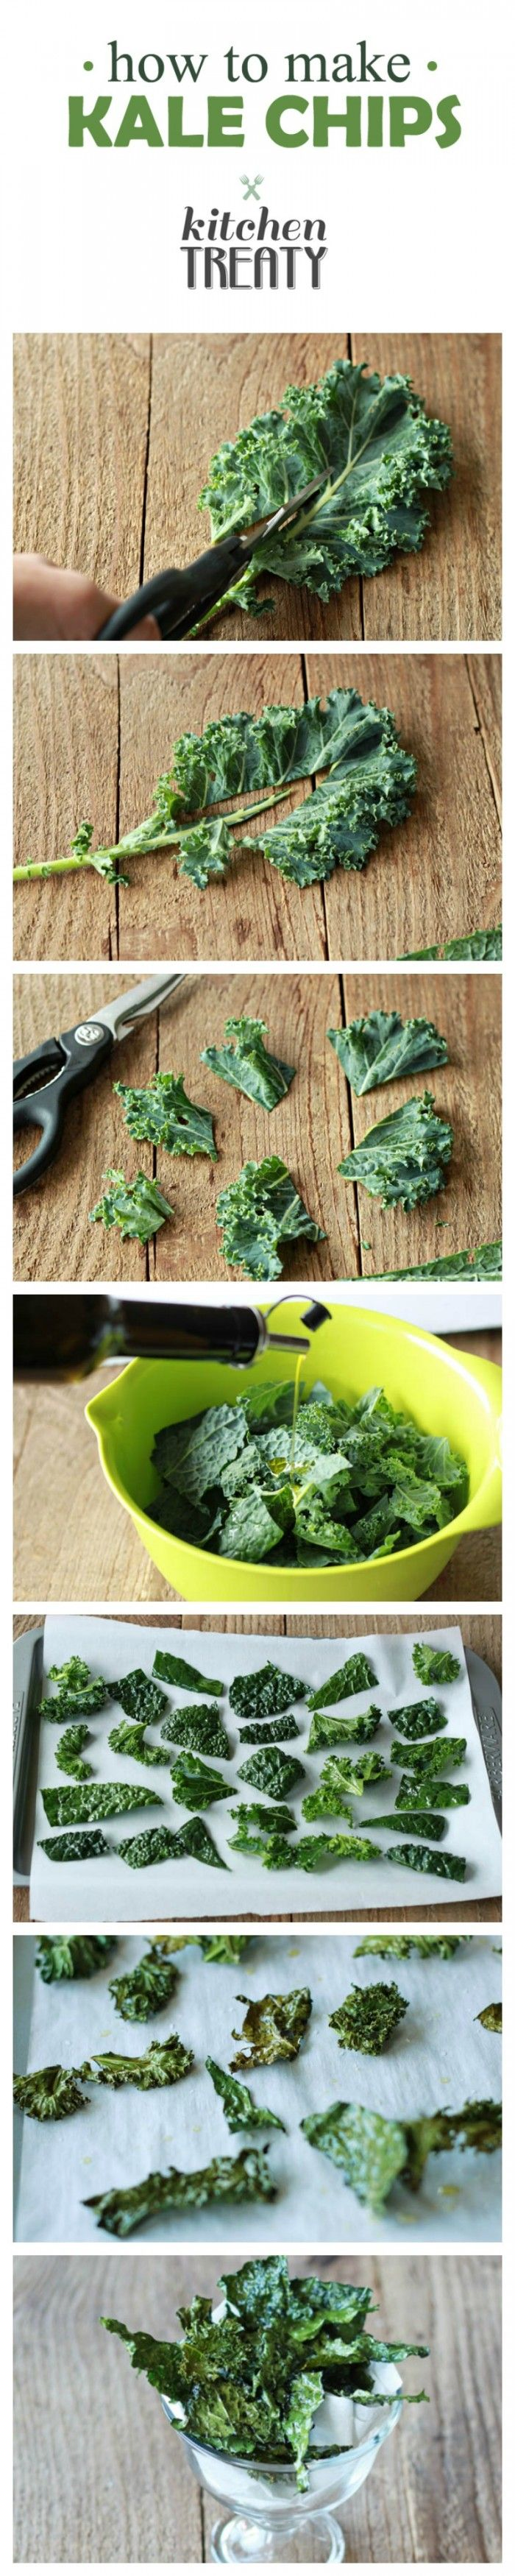 How to Make Kale Chips - Salty, crispy, addicting, and from garden to oven in 15 minutes ...